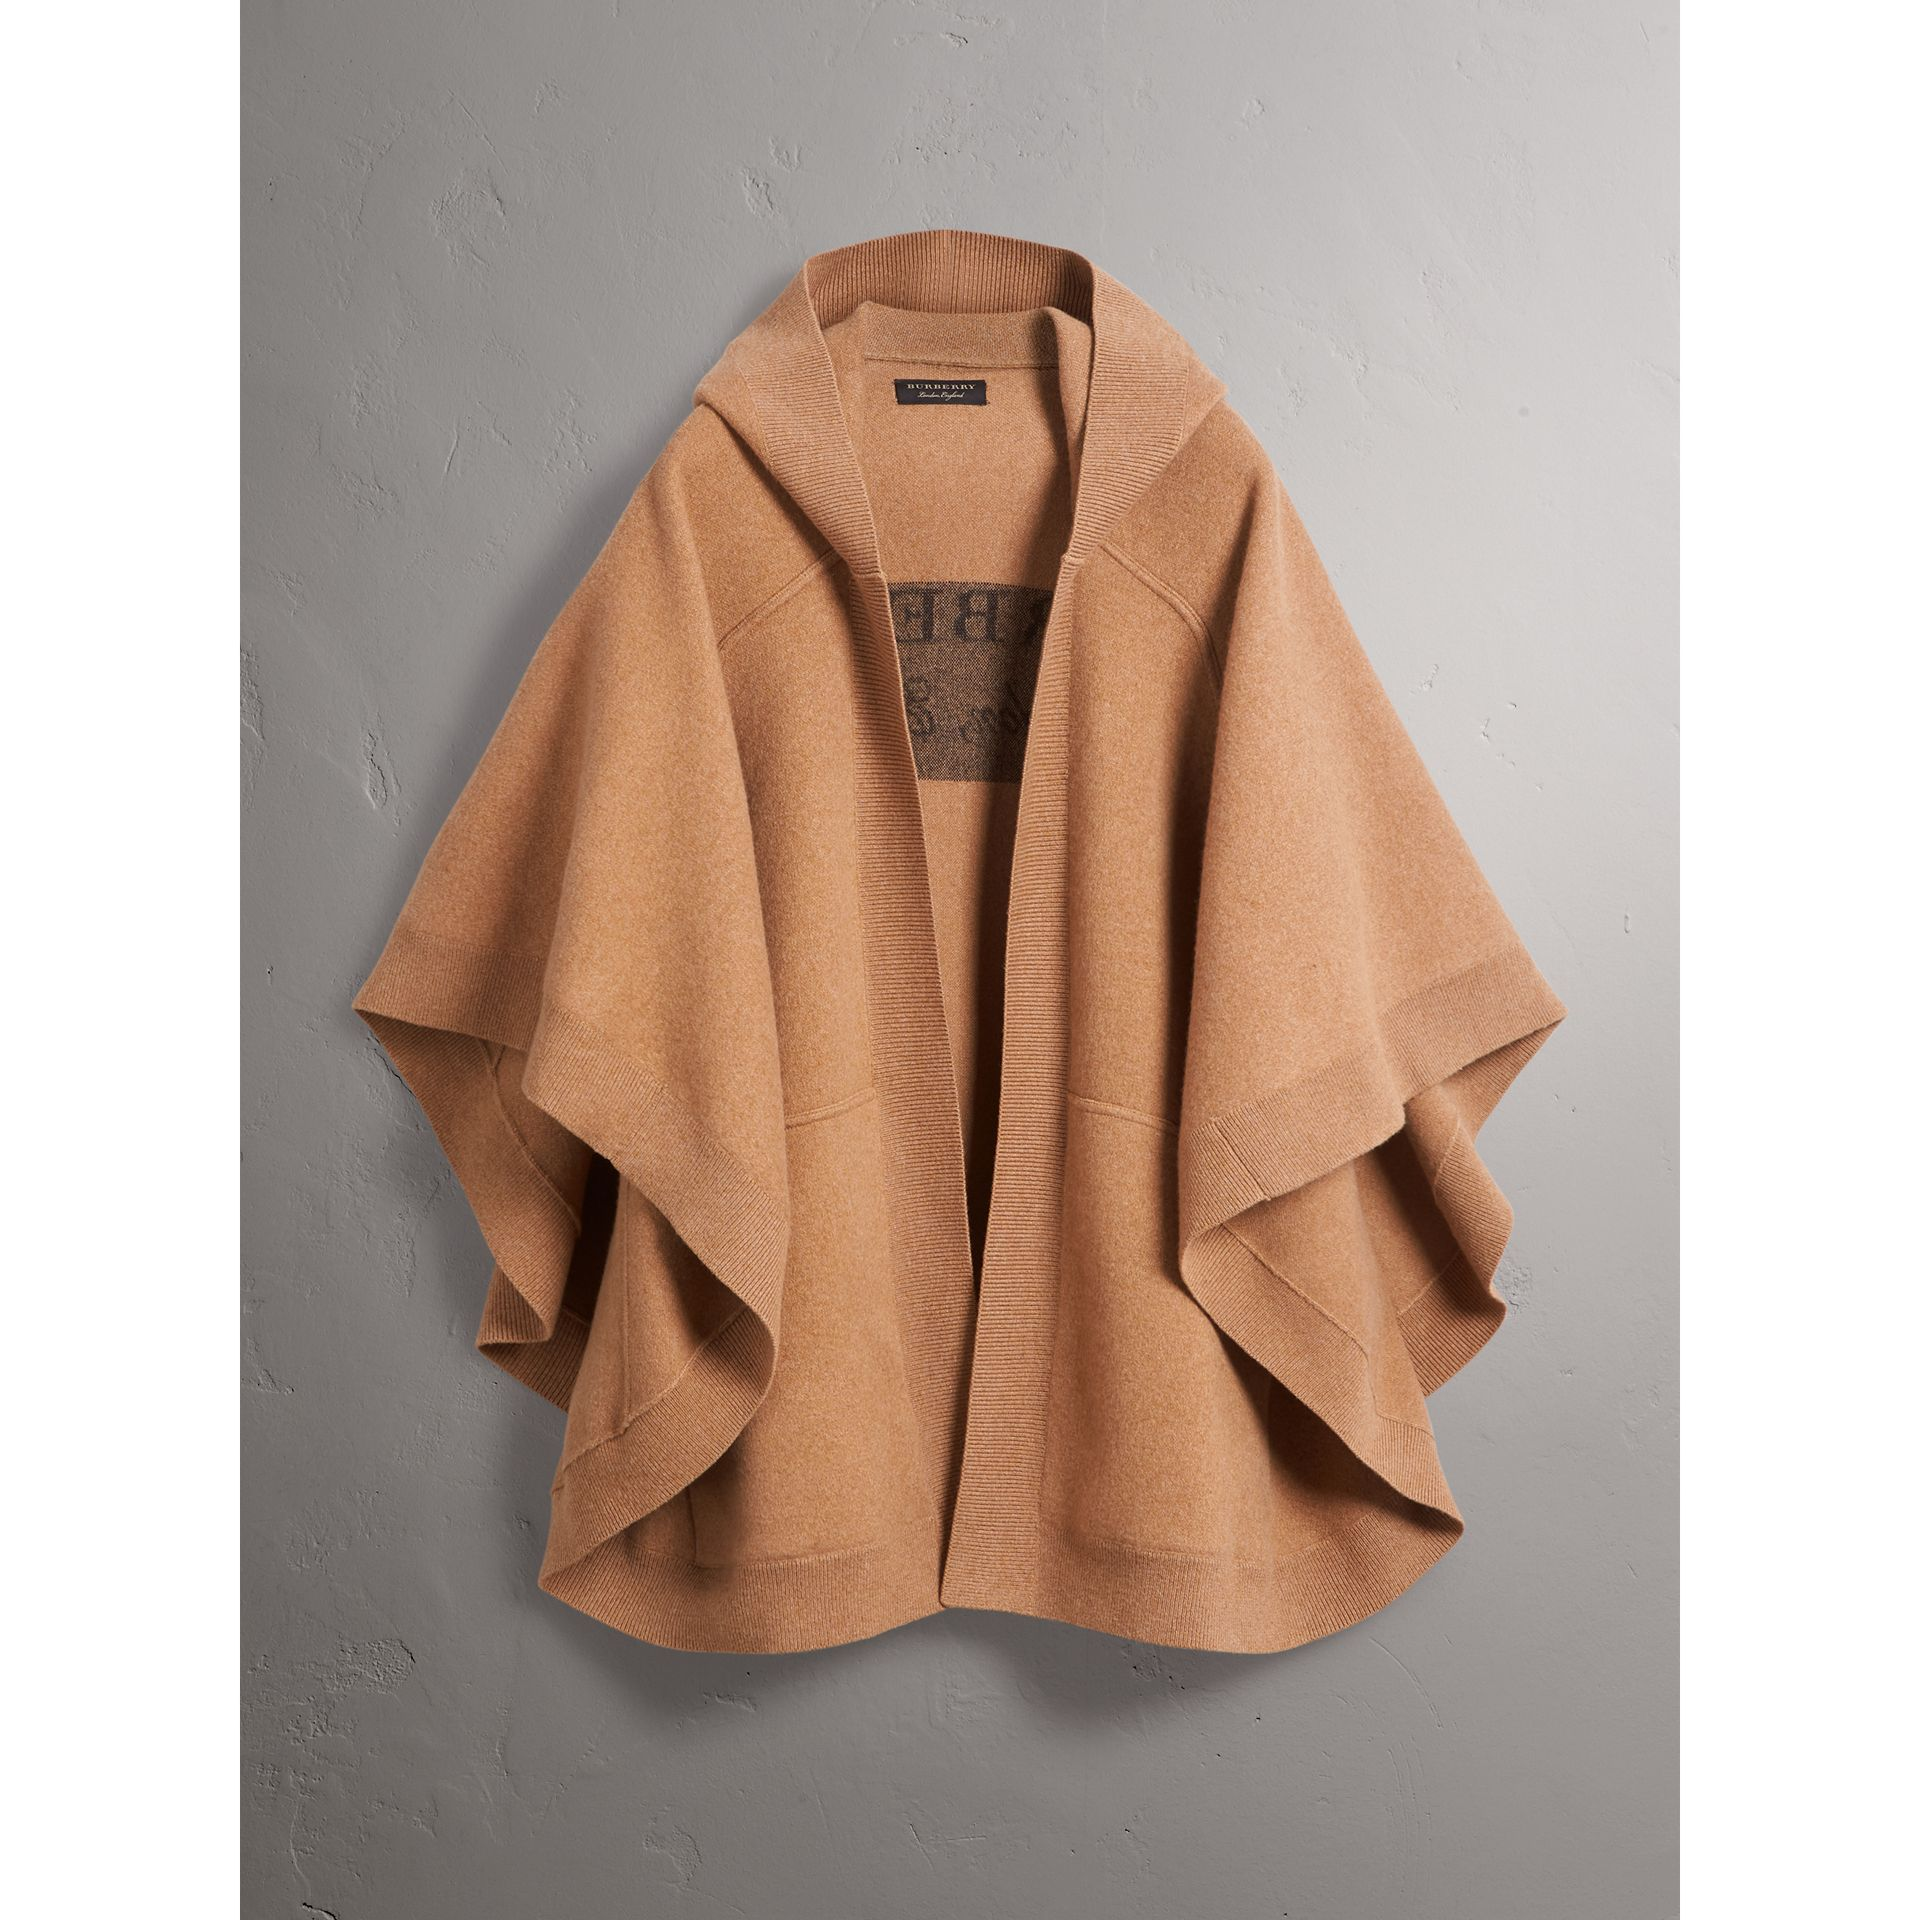 Wool Cashmere Blend Hooded Poncho in Camel - Women | Burberry Singapore - gallery image 4